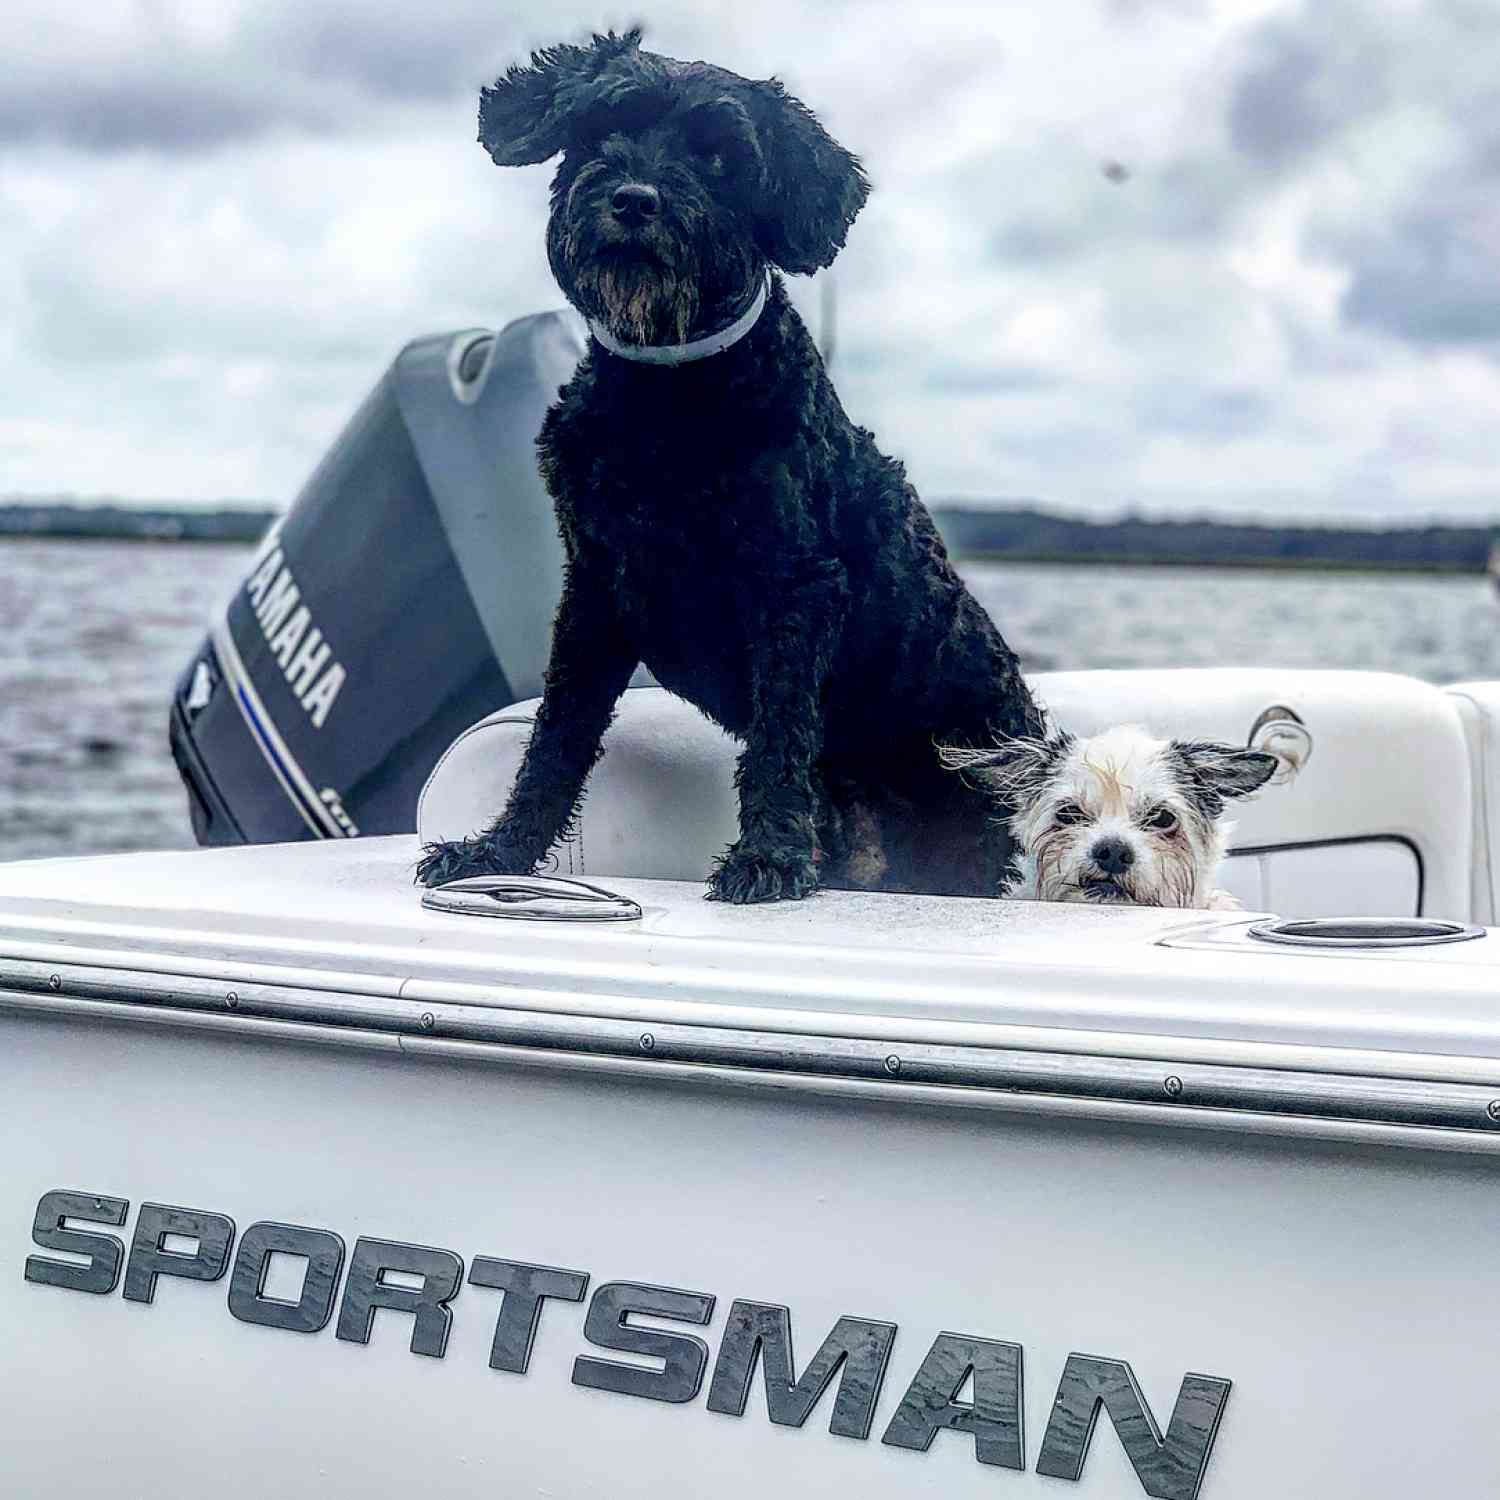 Title: Dog Days of Summer - On board their Sportsman Heritage 231 Center Console - Location: Charleston SC. Participating in the Photo Contest #SportsmanJuly2019